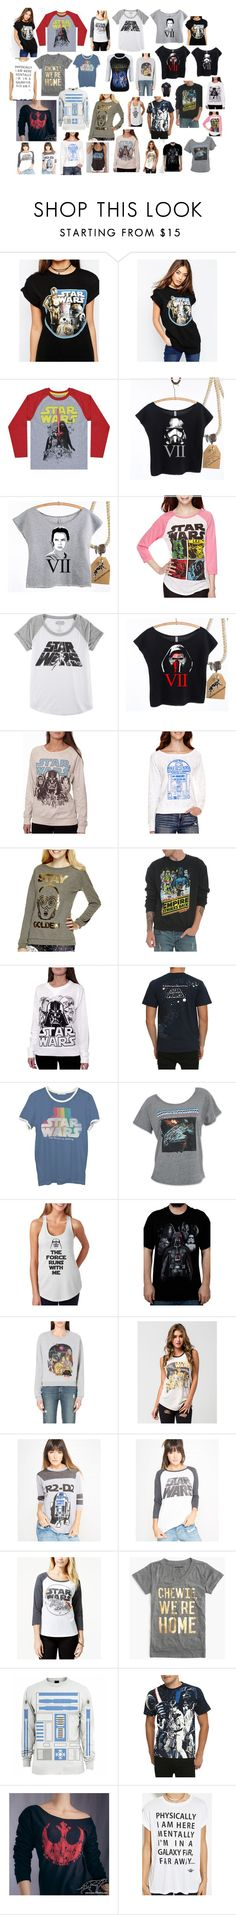 """Star Wars Shirts"" by meefo32o ❤ liked on Polyvore featuring ASOS, Hybrid, Junk Food Clothing, ElevenParis, Freeze, J.Crew, R2, Forever 21, women's clothing and women"